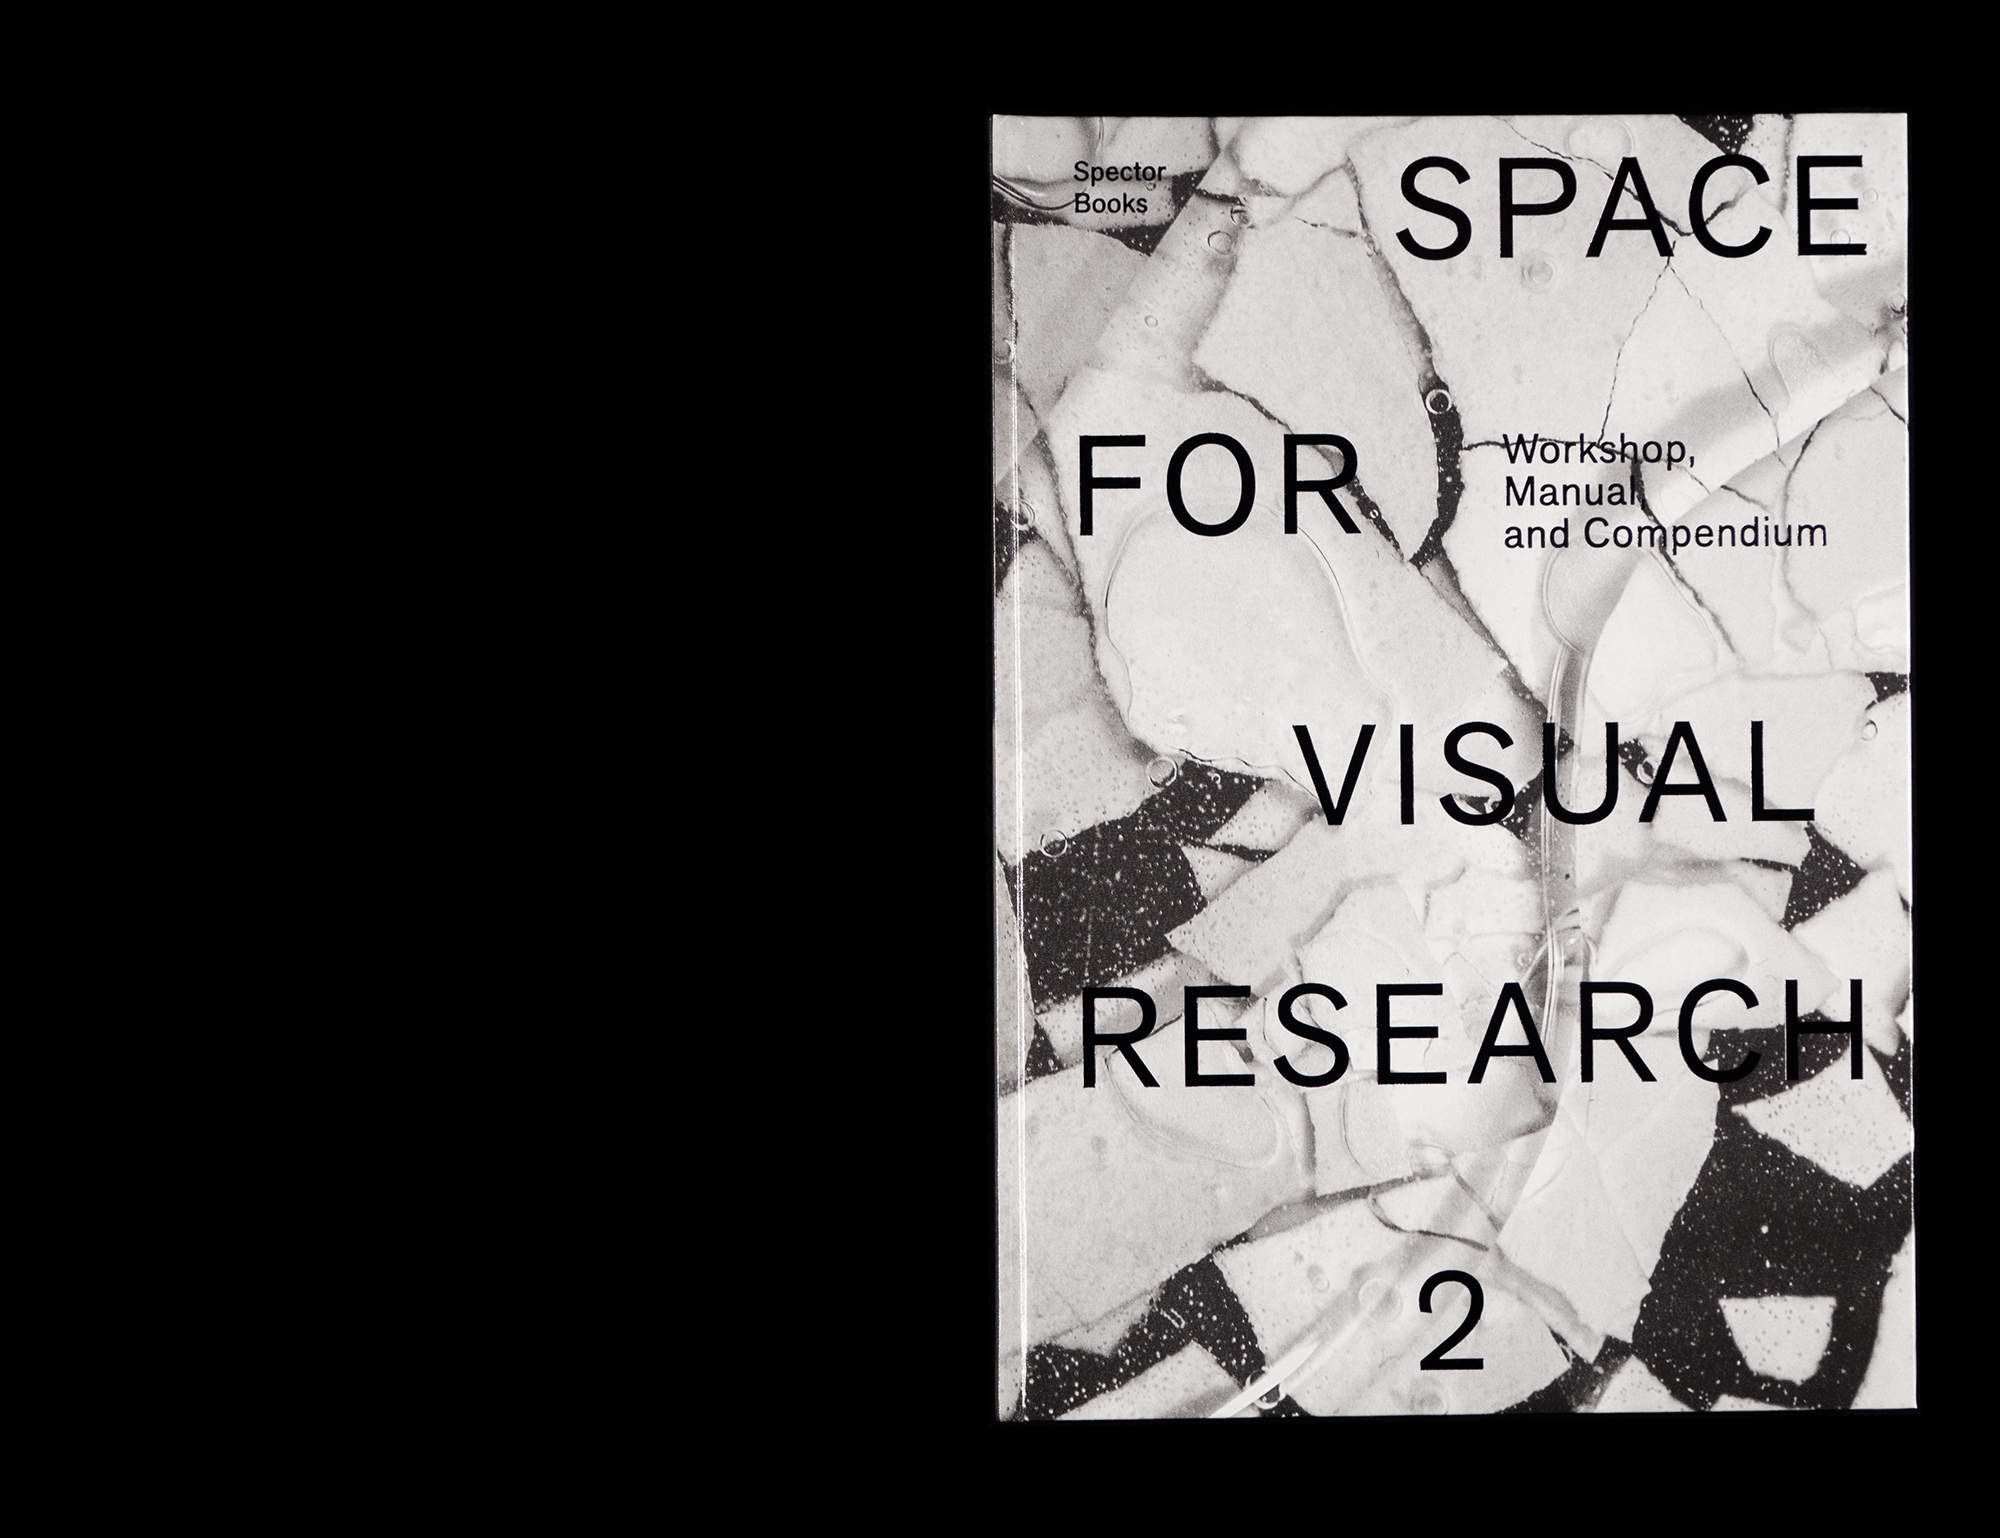 Space for Visual Research 2 | Spector Books